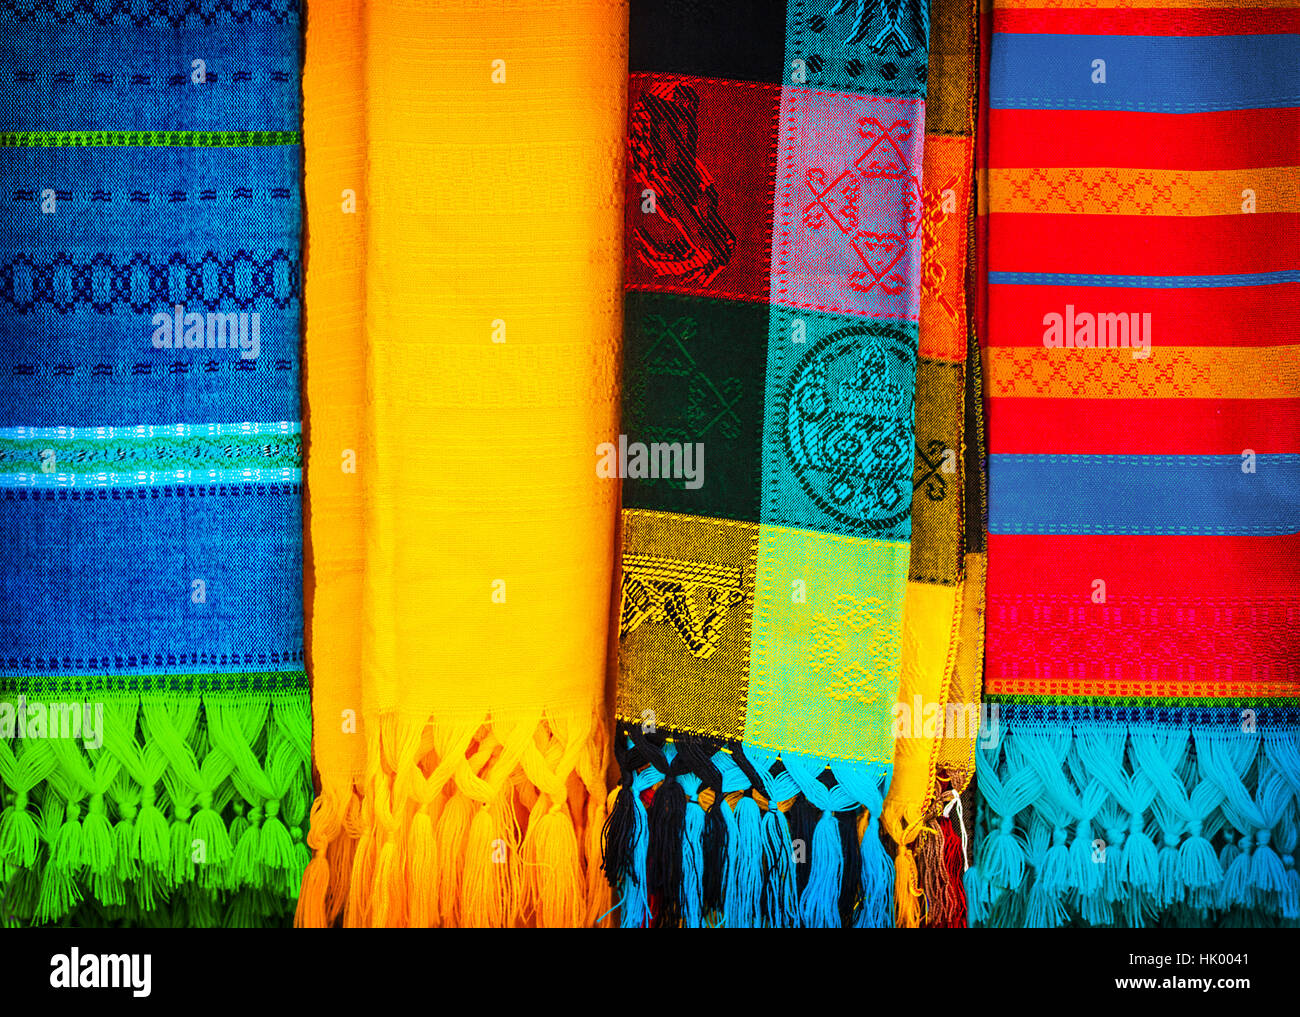 Blanket Traditional Mexican Handmade Colorful Cloth Indian Culture